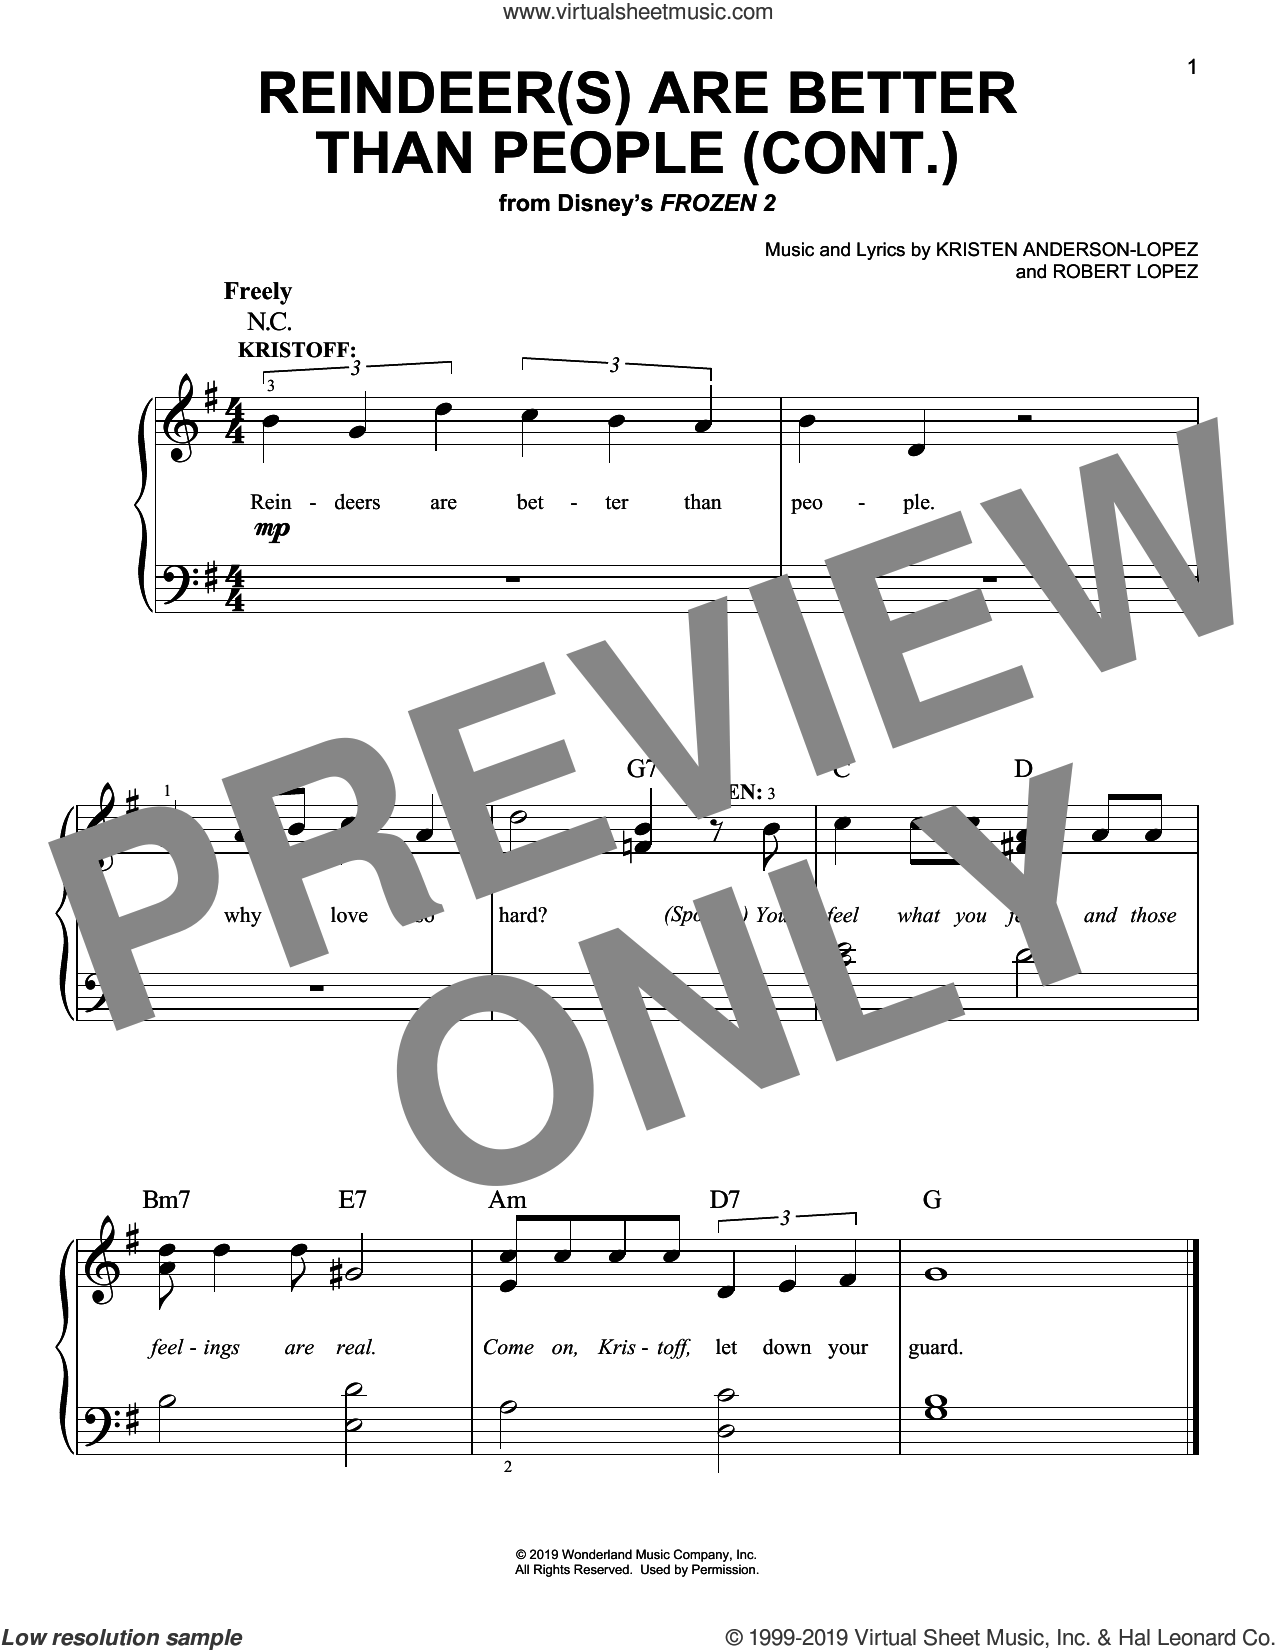 Reindeer(s) Are Better Than People (Cont.) (from Disney's Frozen 2) sheet music for piano solo by Jonathan Groff, Kristen Anderson-Lopez and Robert Lopez, easy skill level